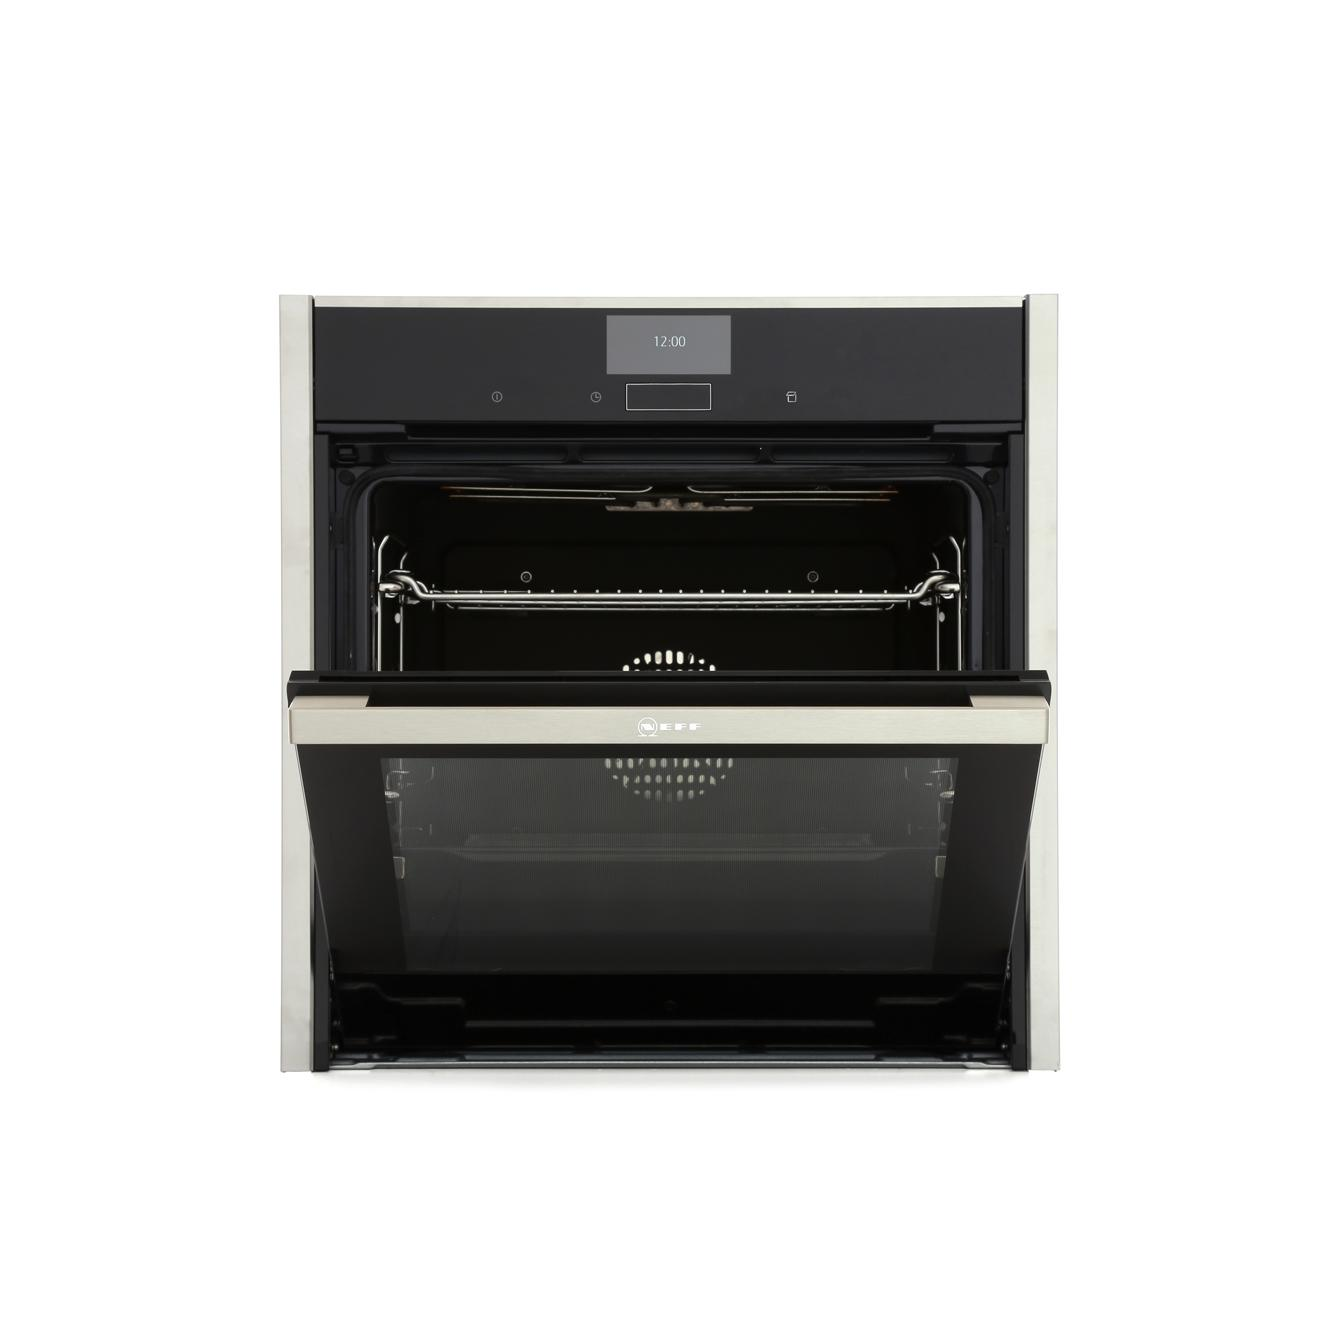 Neff n90 b47fs34nob built in 60cm hide slide electric single steam oven stainless steel - Neff single oven with grill ...